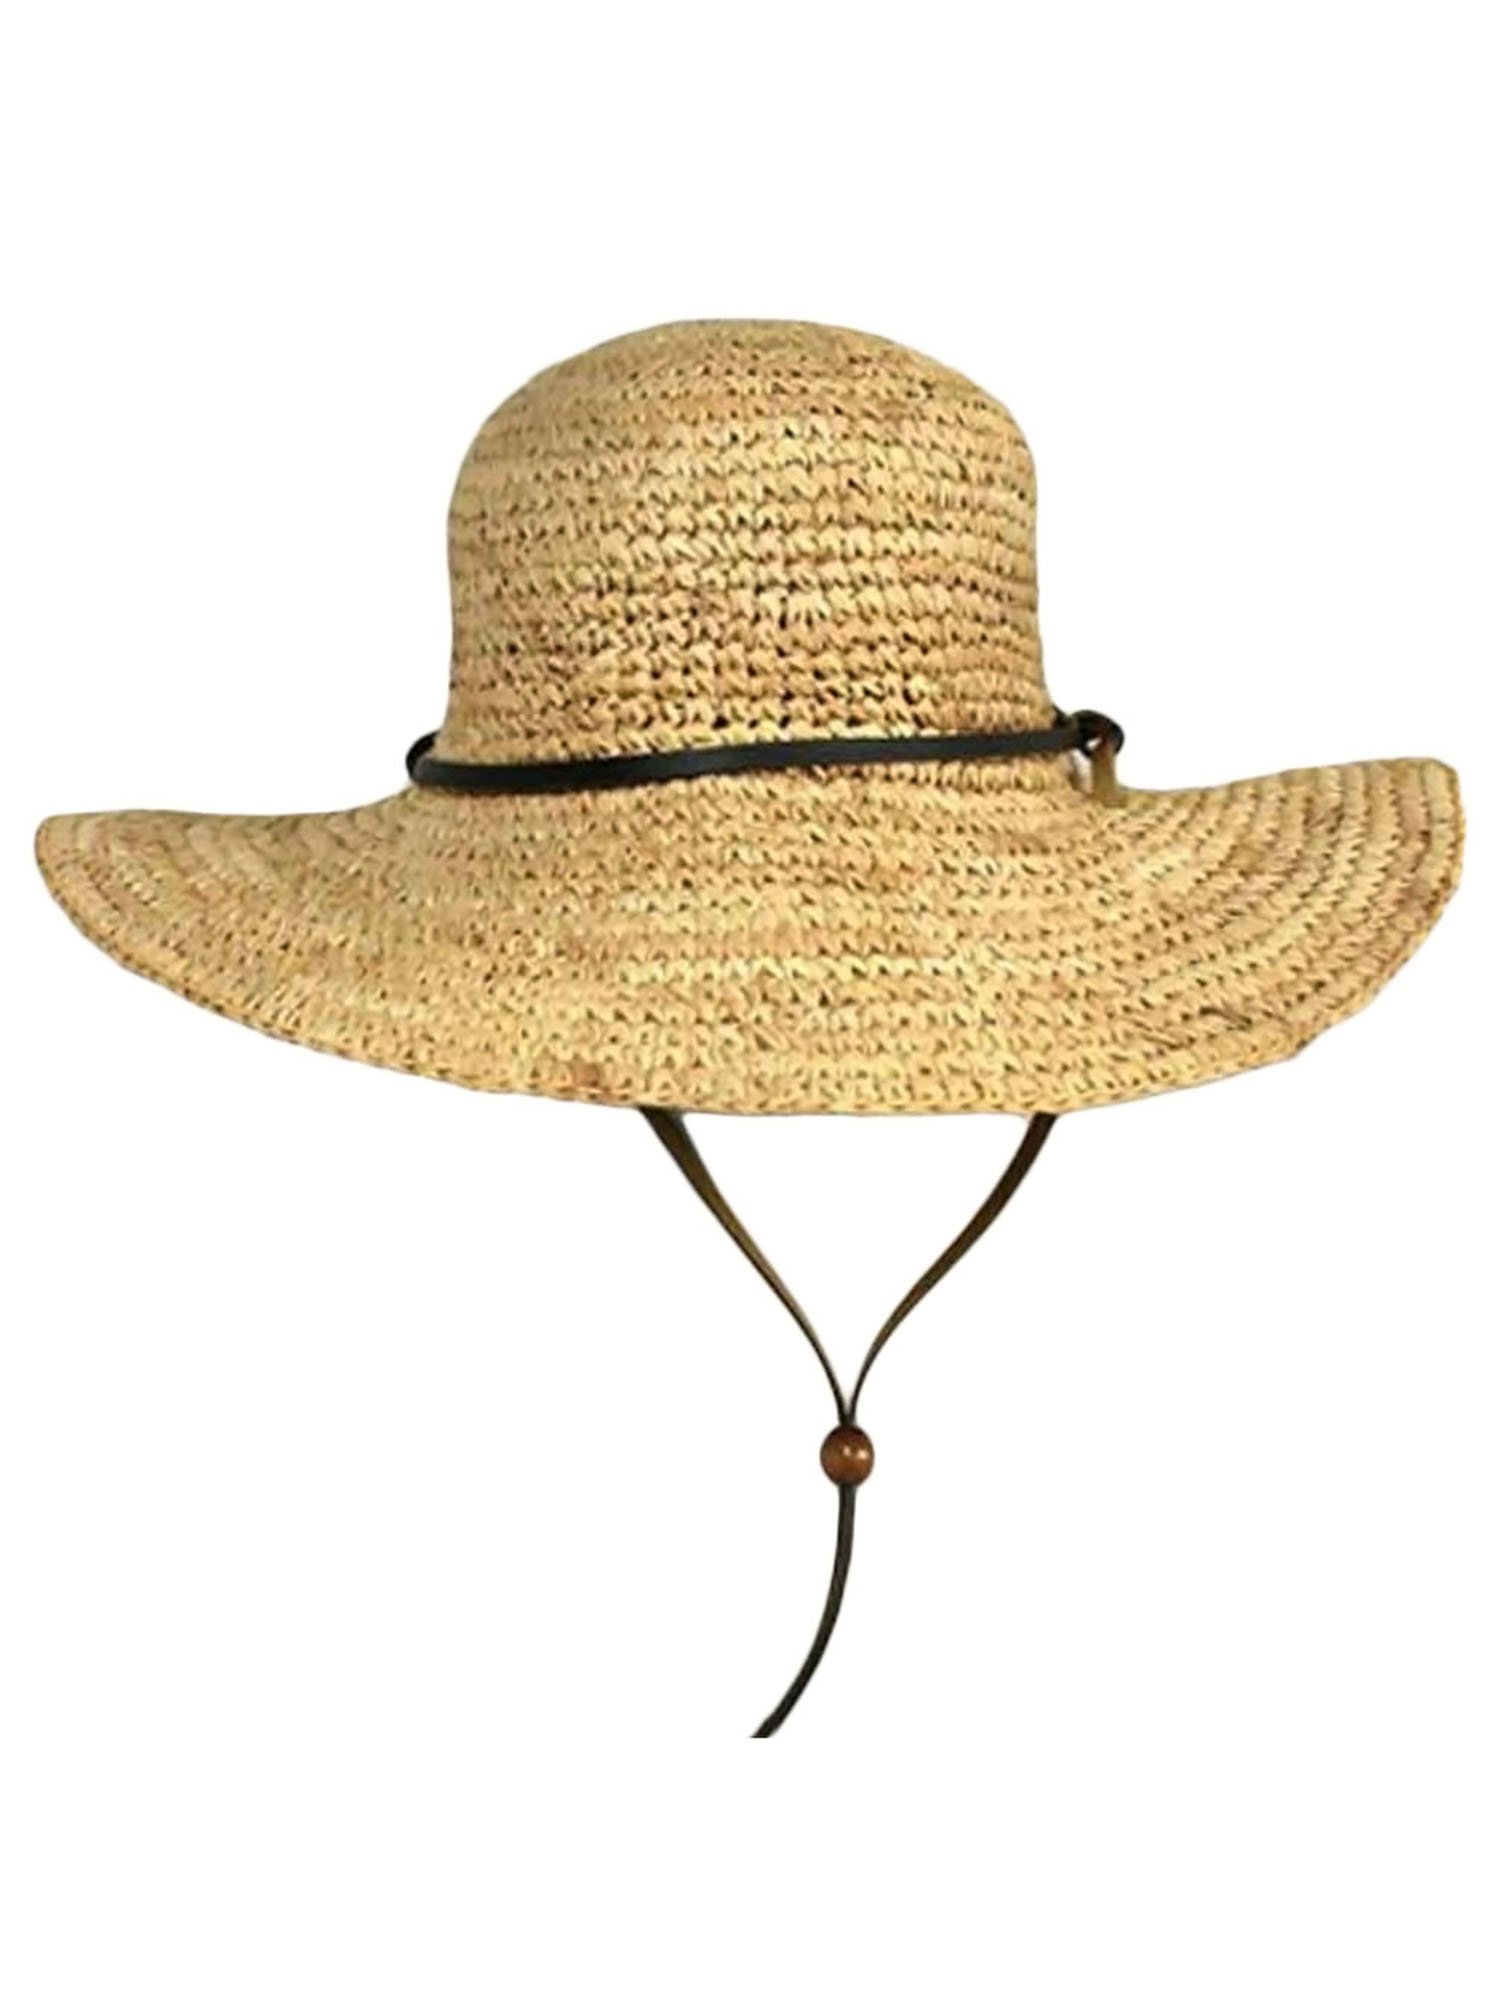 Natural Tan Wide Brim Floppy Sun Hat With Chin Cord